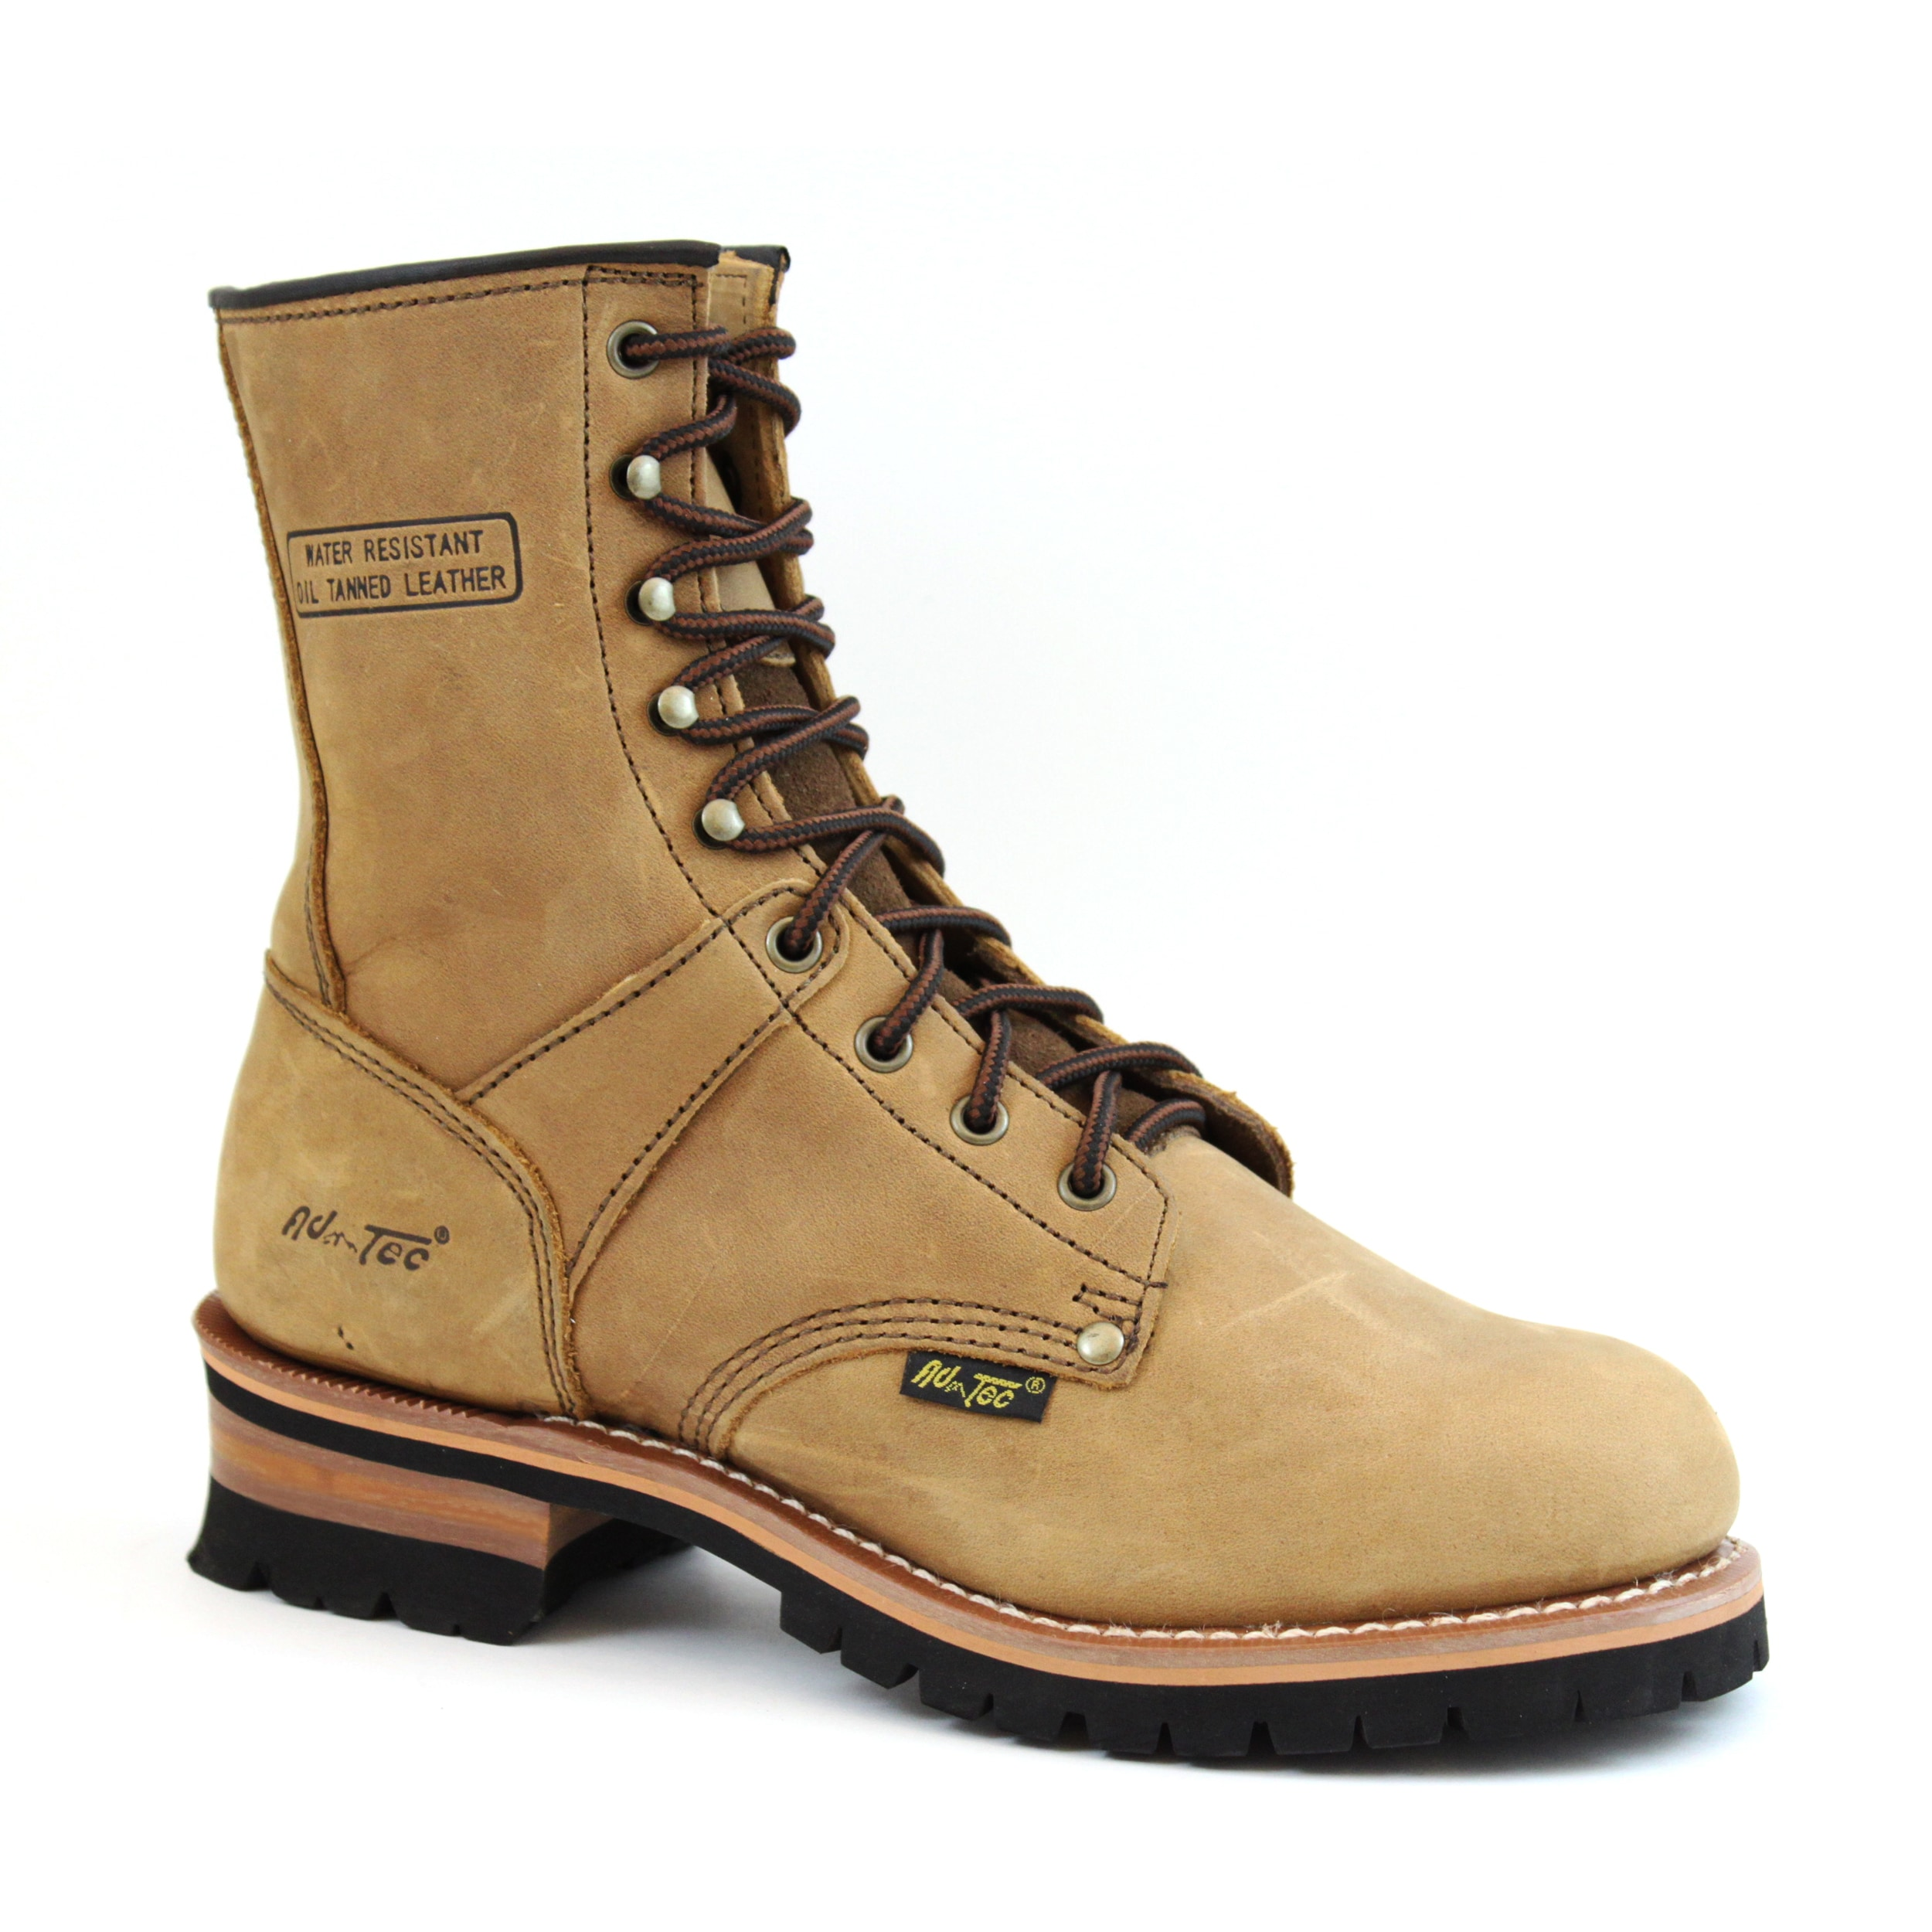 31e19a01569 Buy Work Men's Boots Online at Overstock | Our Best Men's Shoes Deals